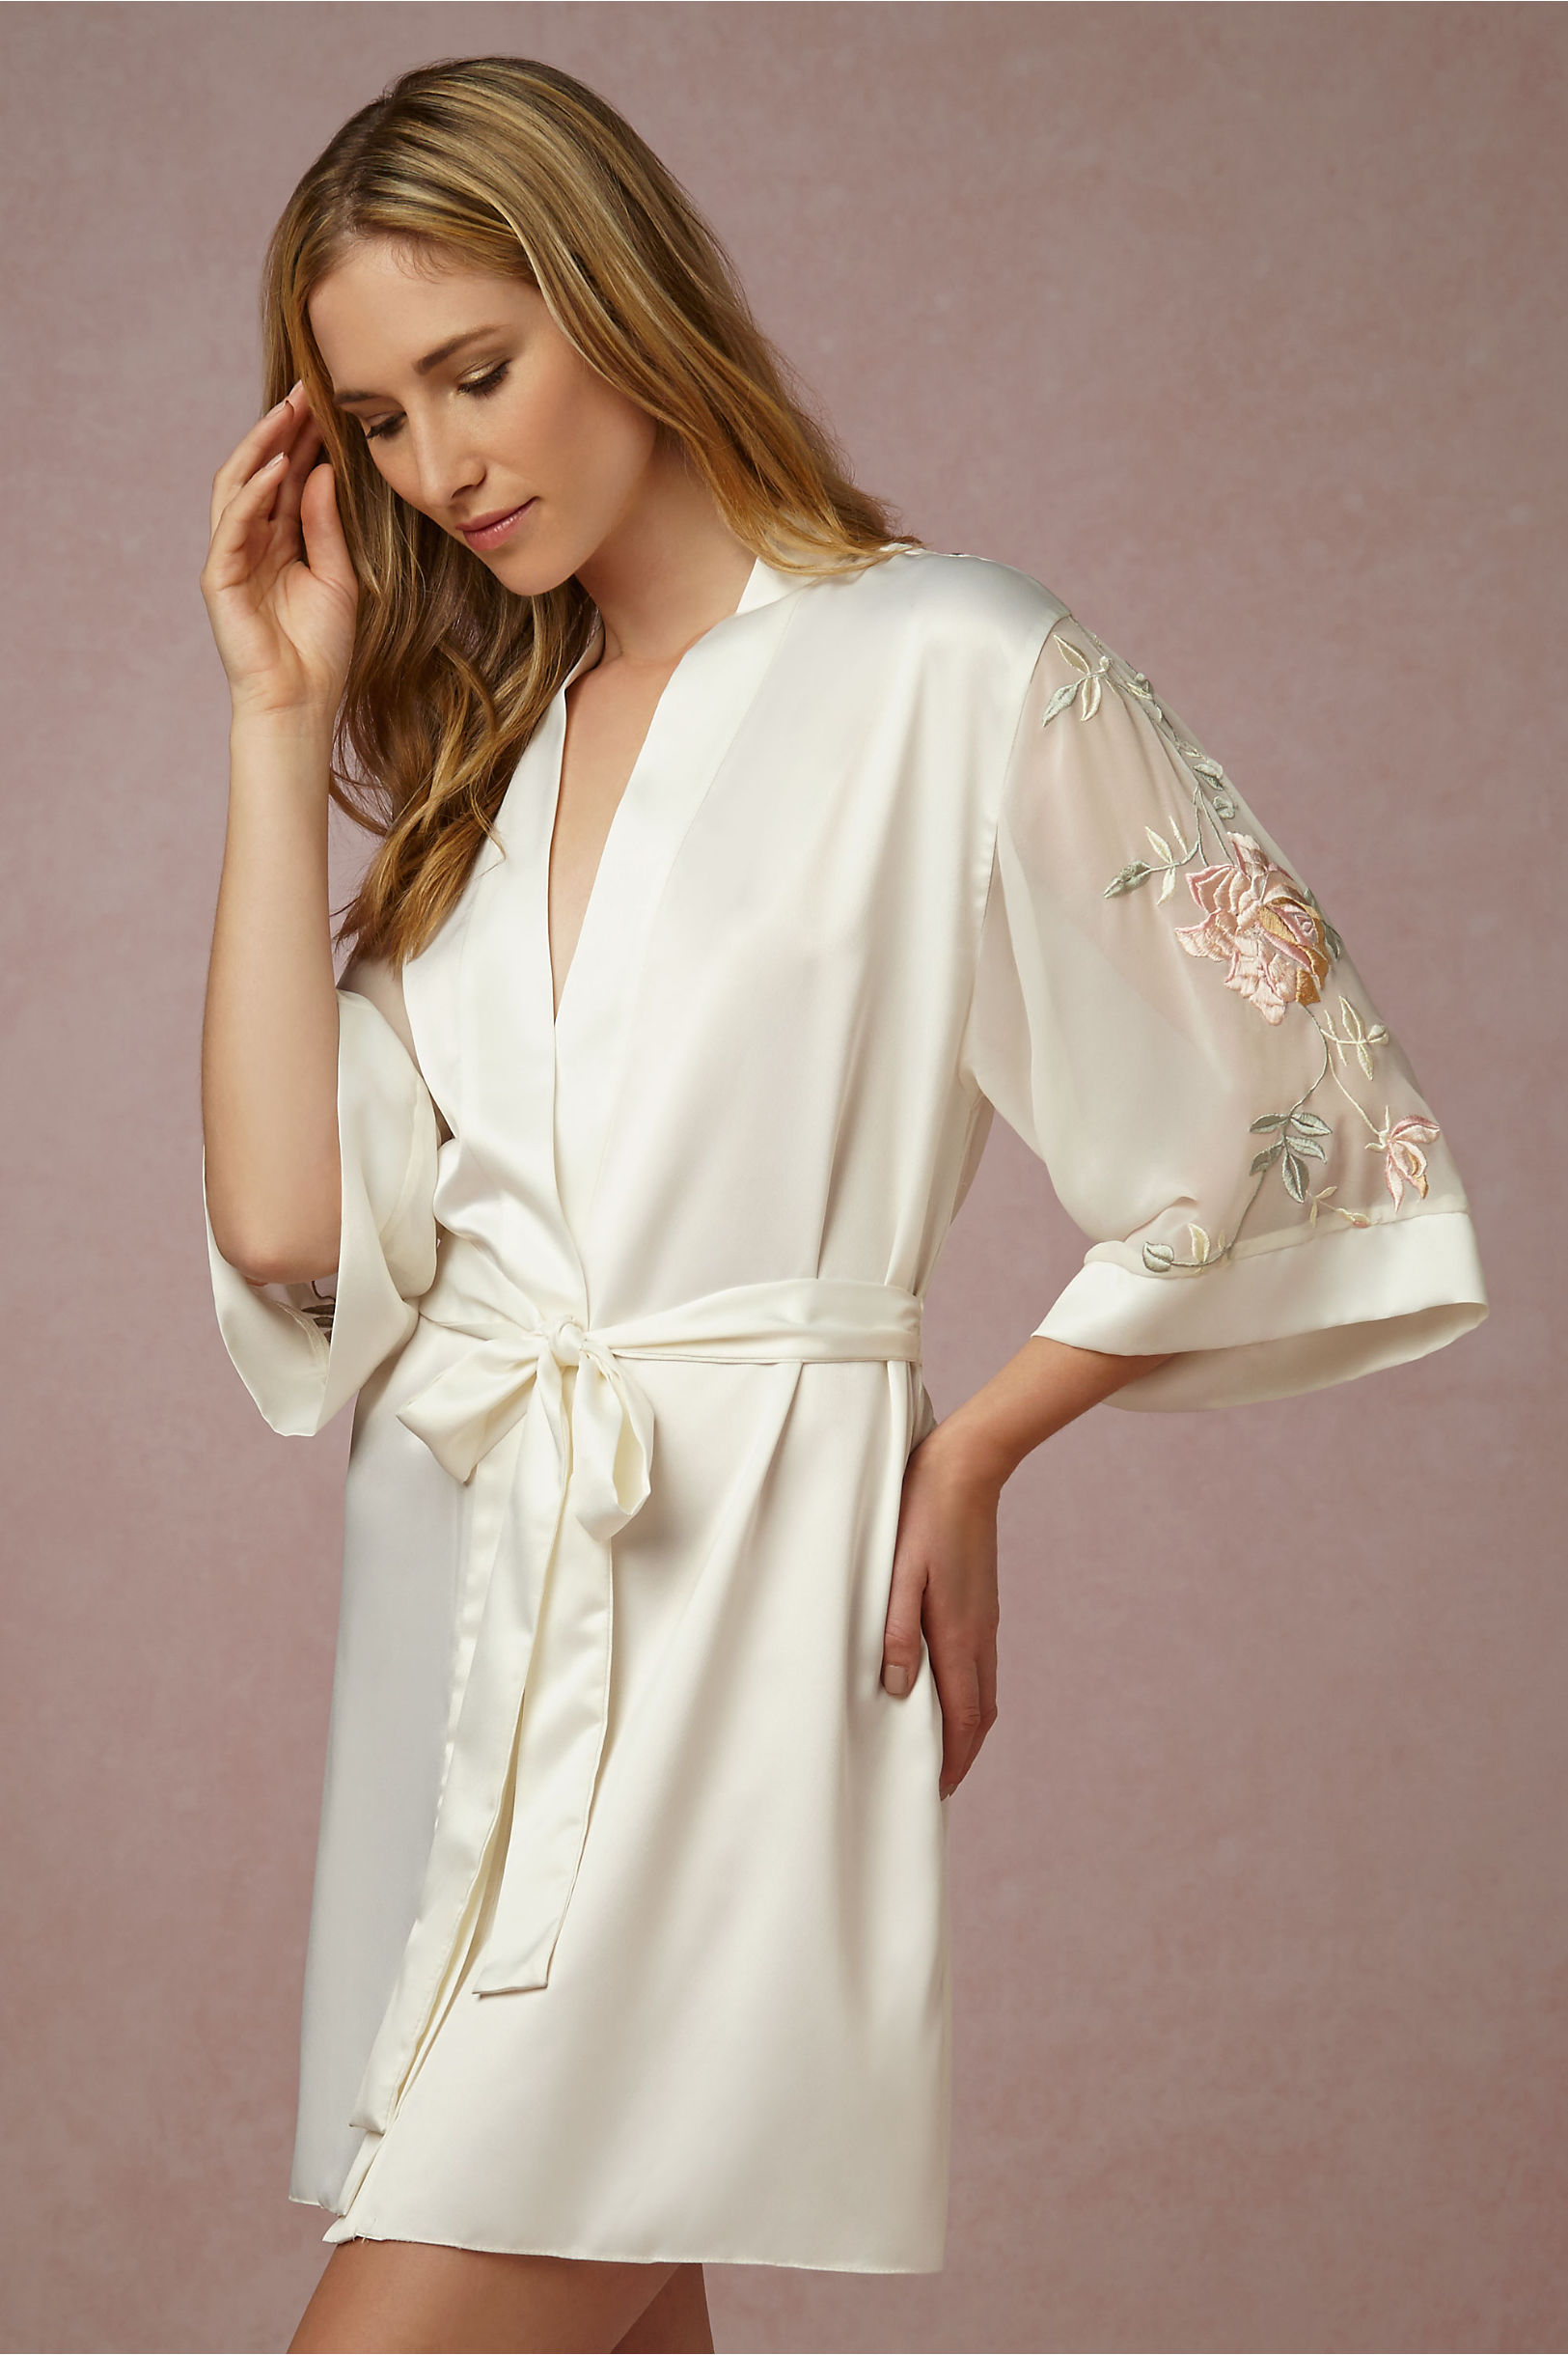 Sweet Pea Robe in Bride | BHLDN